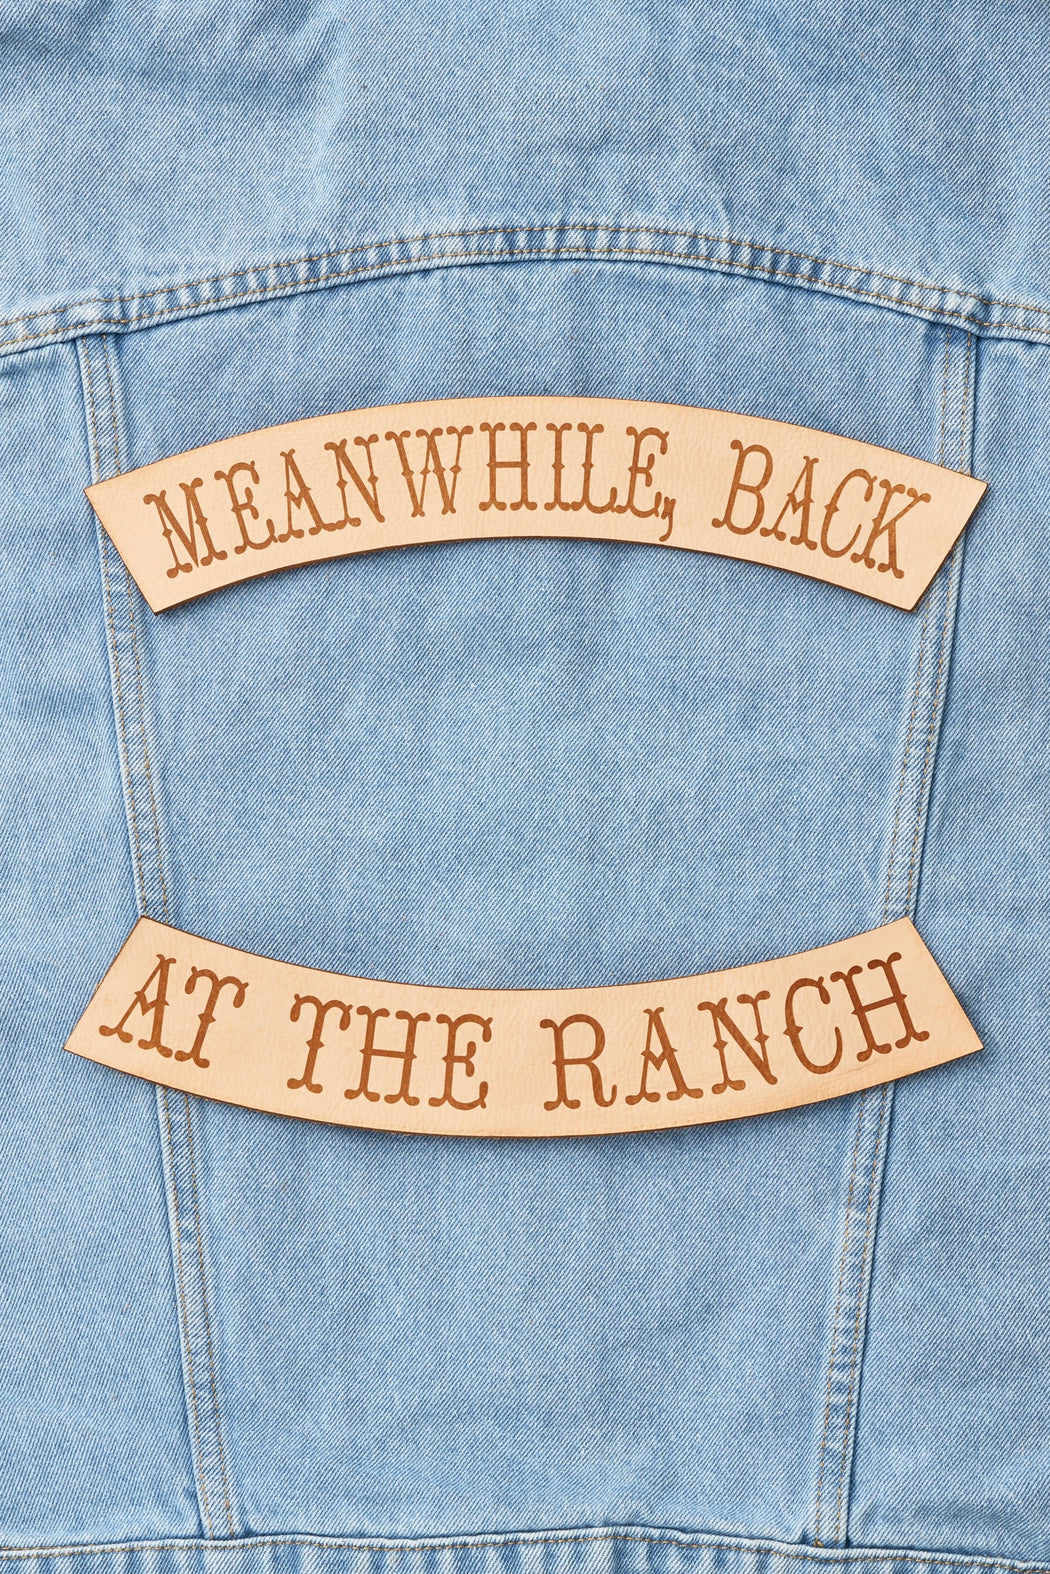 MEANWHILE BACK AT THE RANCH BIKER PATCH SET